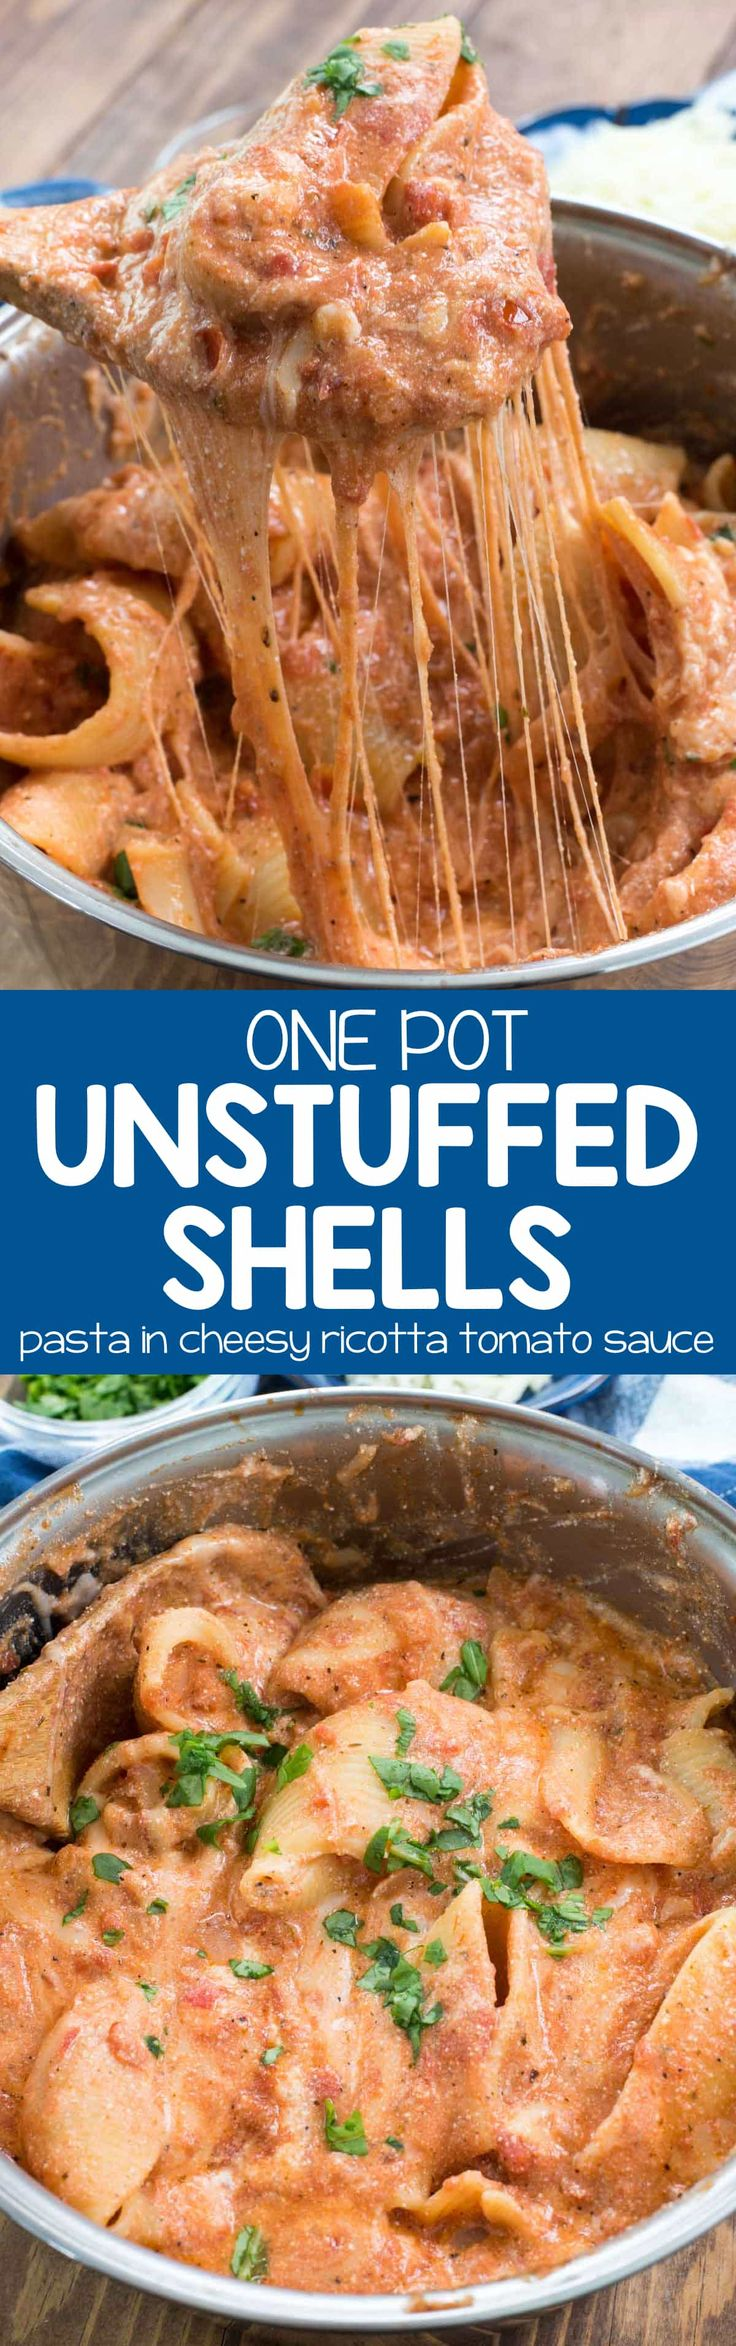 One Pot Unstuffed Shells - this easy stuffed shell recipe is all made in one pot without all the extra work! It's a great weeknight meal and everyone loves it!